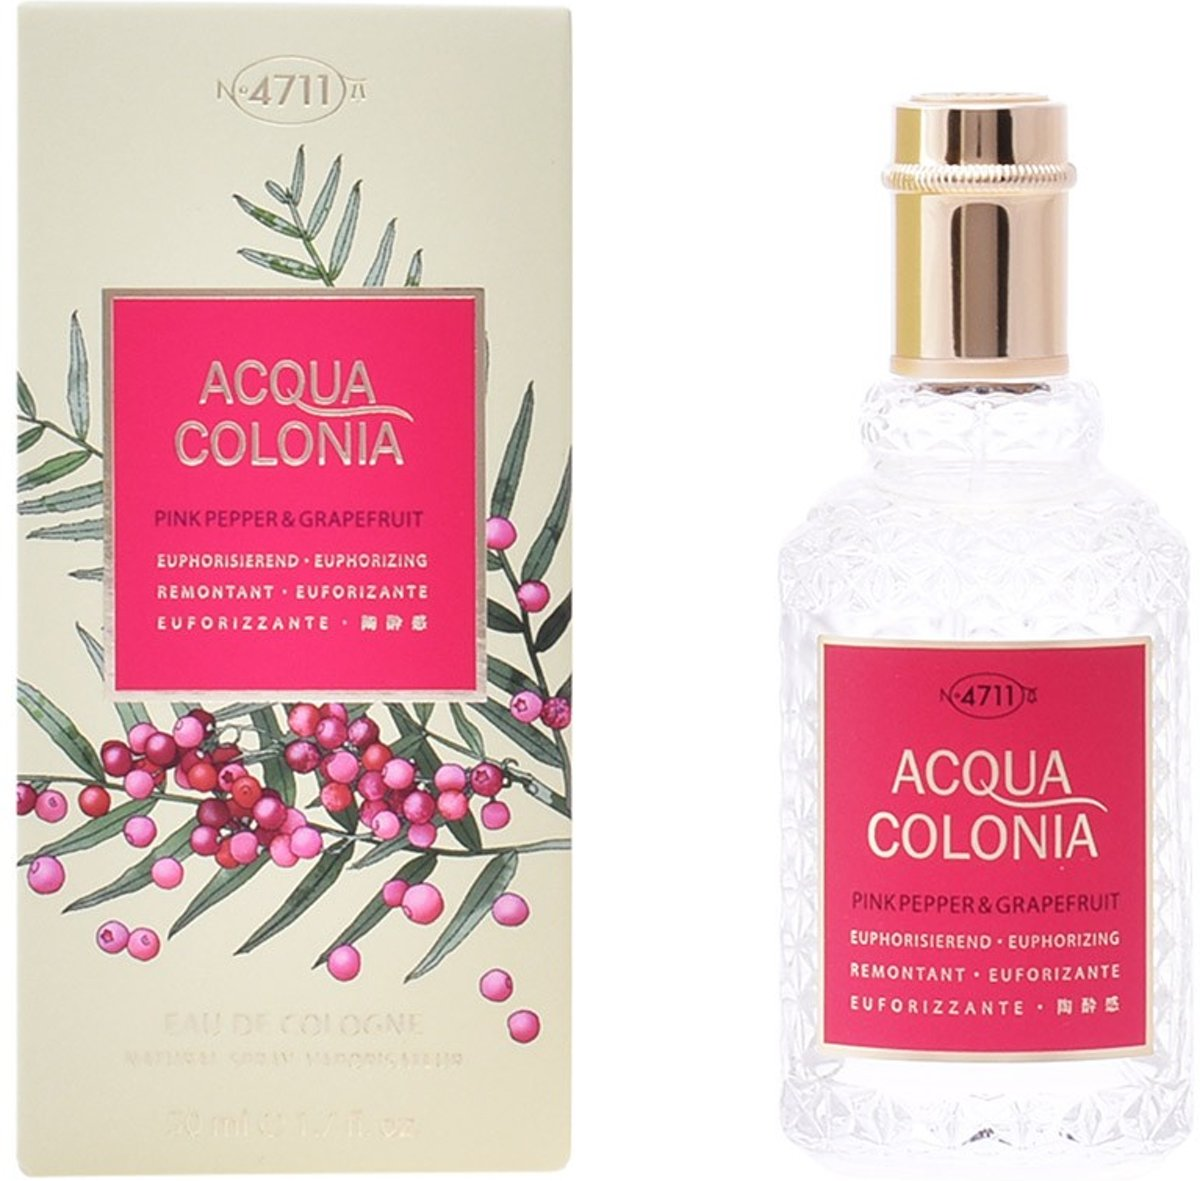 MULTI BUNDEL 2 stuks ACQUA colonia PINK PEPPER & GRAPEFRUIT Eau de Cologne Spray 50 ml